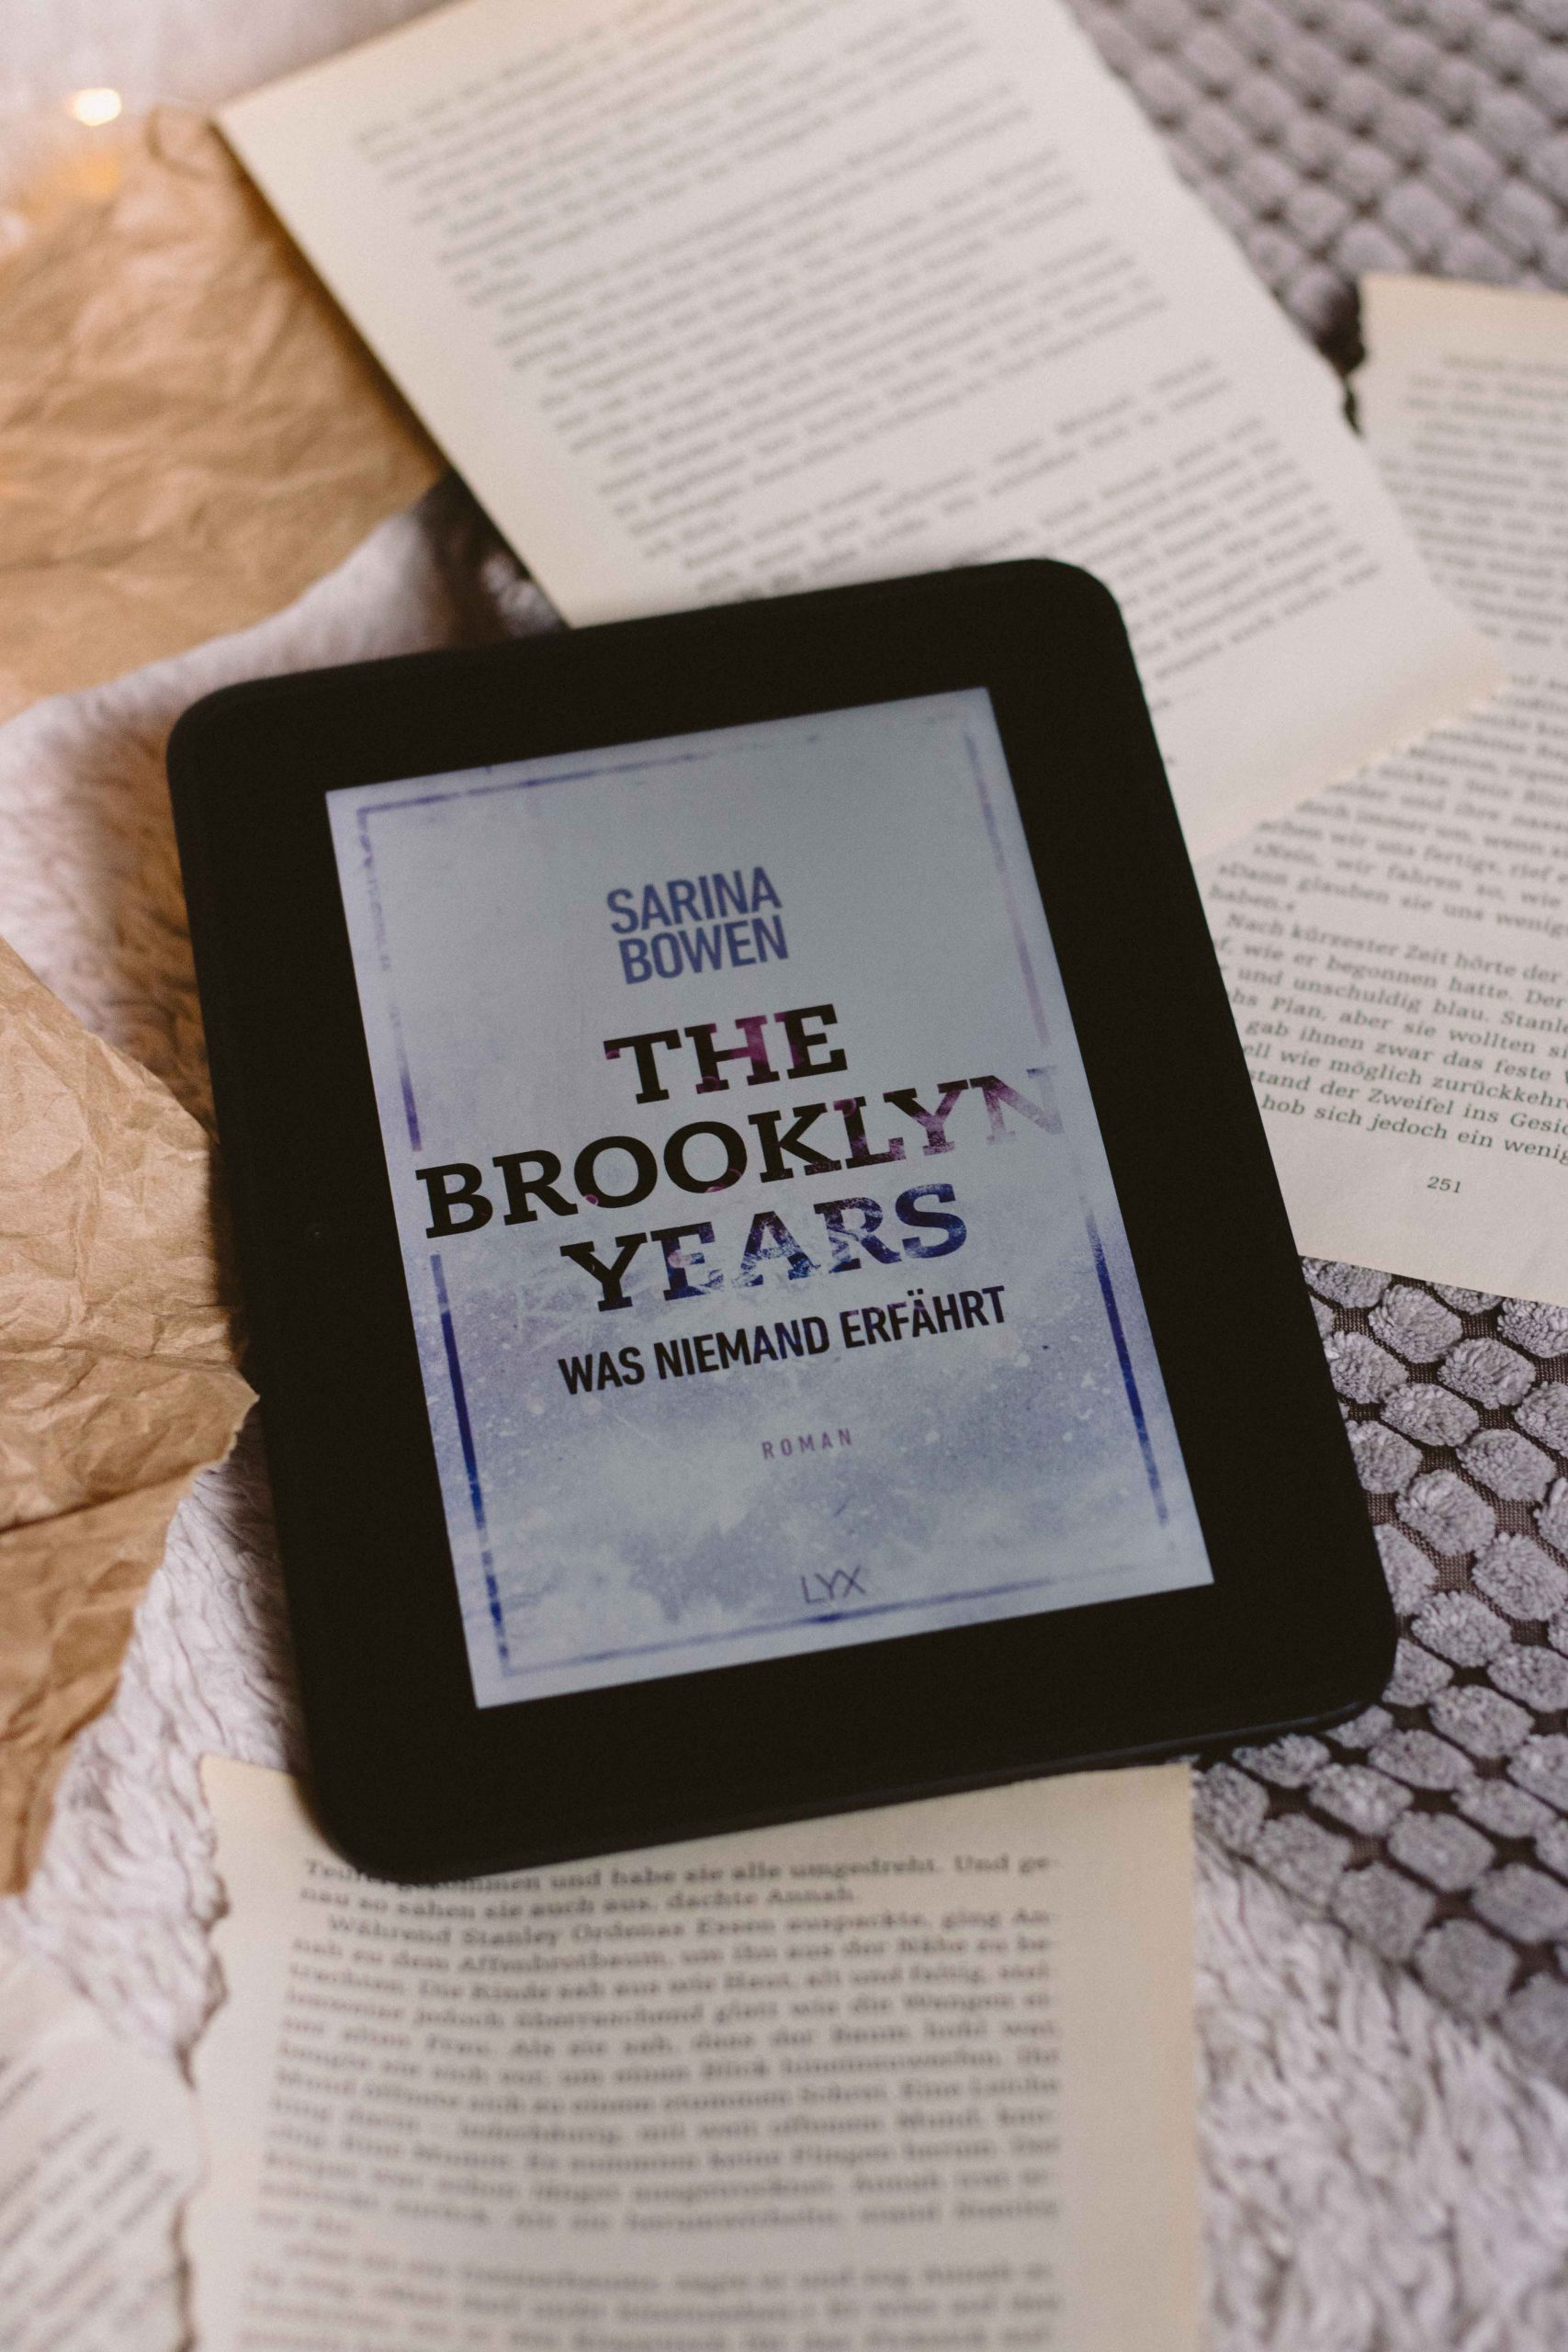 Was niemand erfährt – The Brooklyn Years #2 | Sarina Bowen